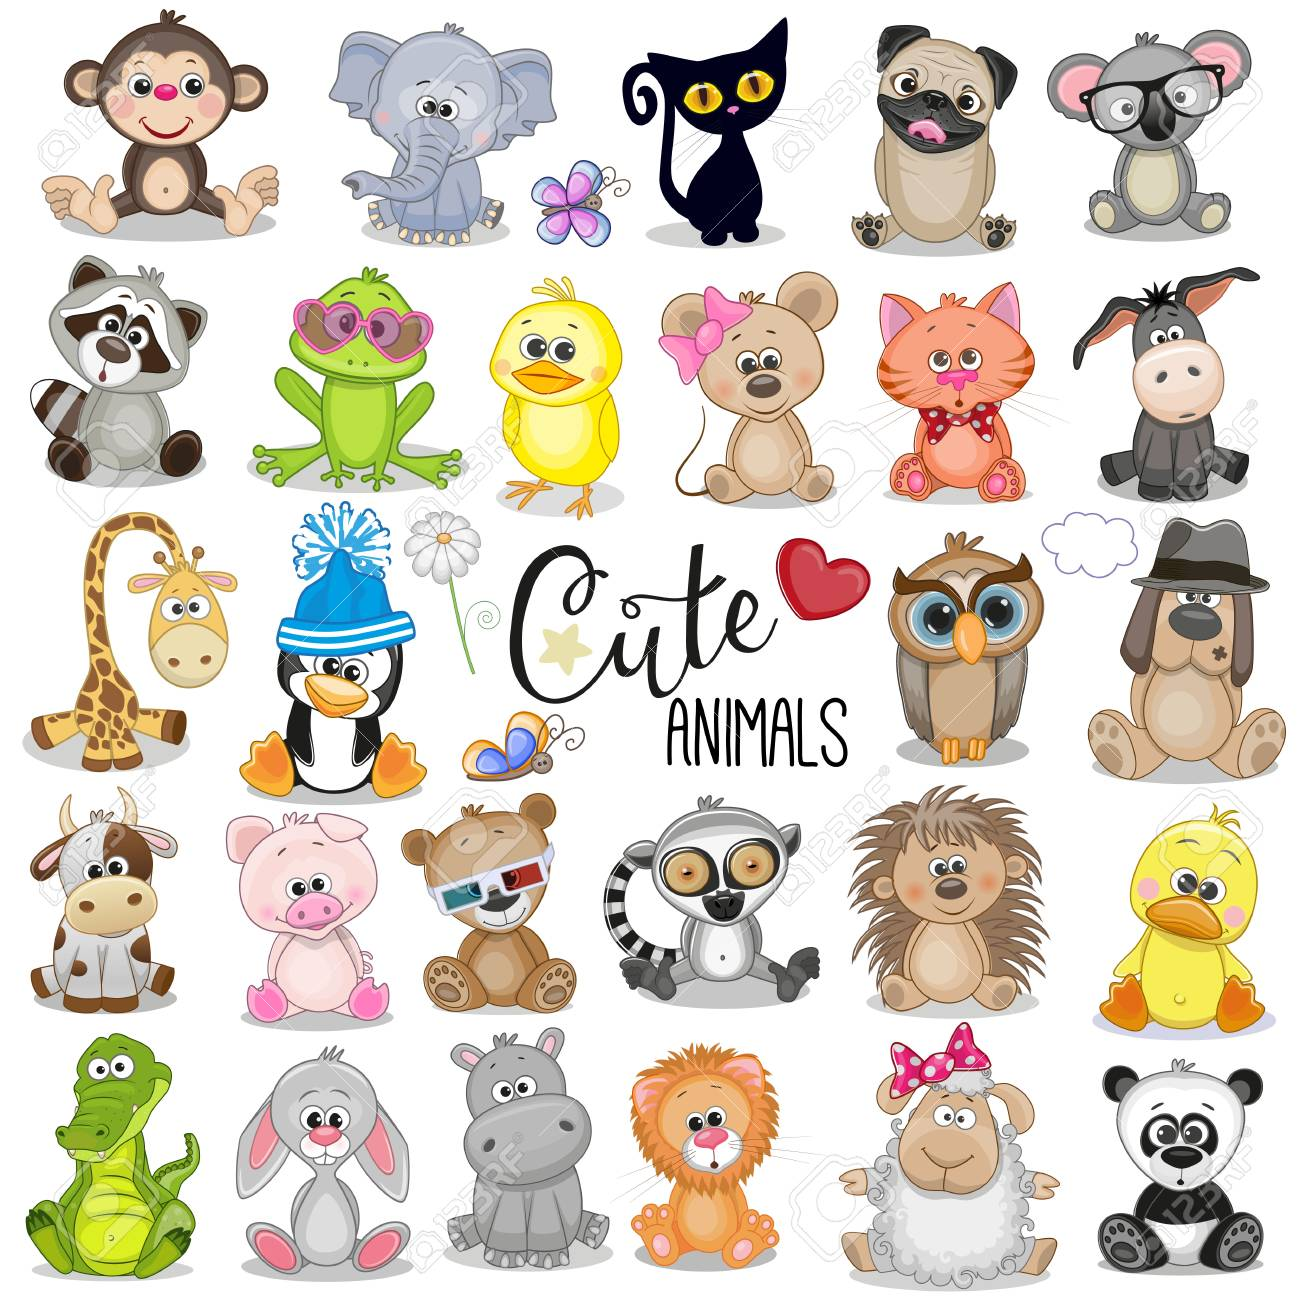 Set of Cute Cartoon Animals on a white background - 108798436